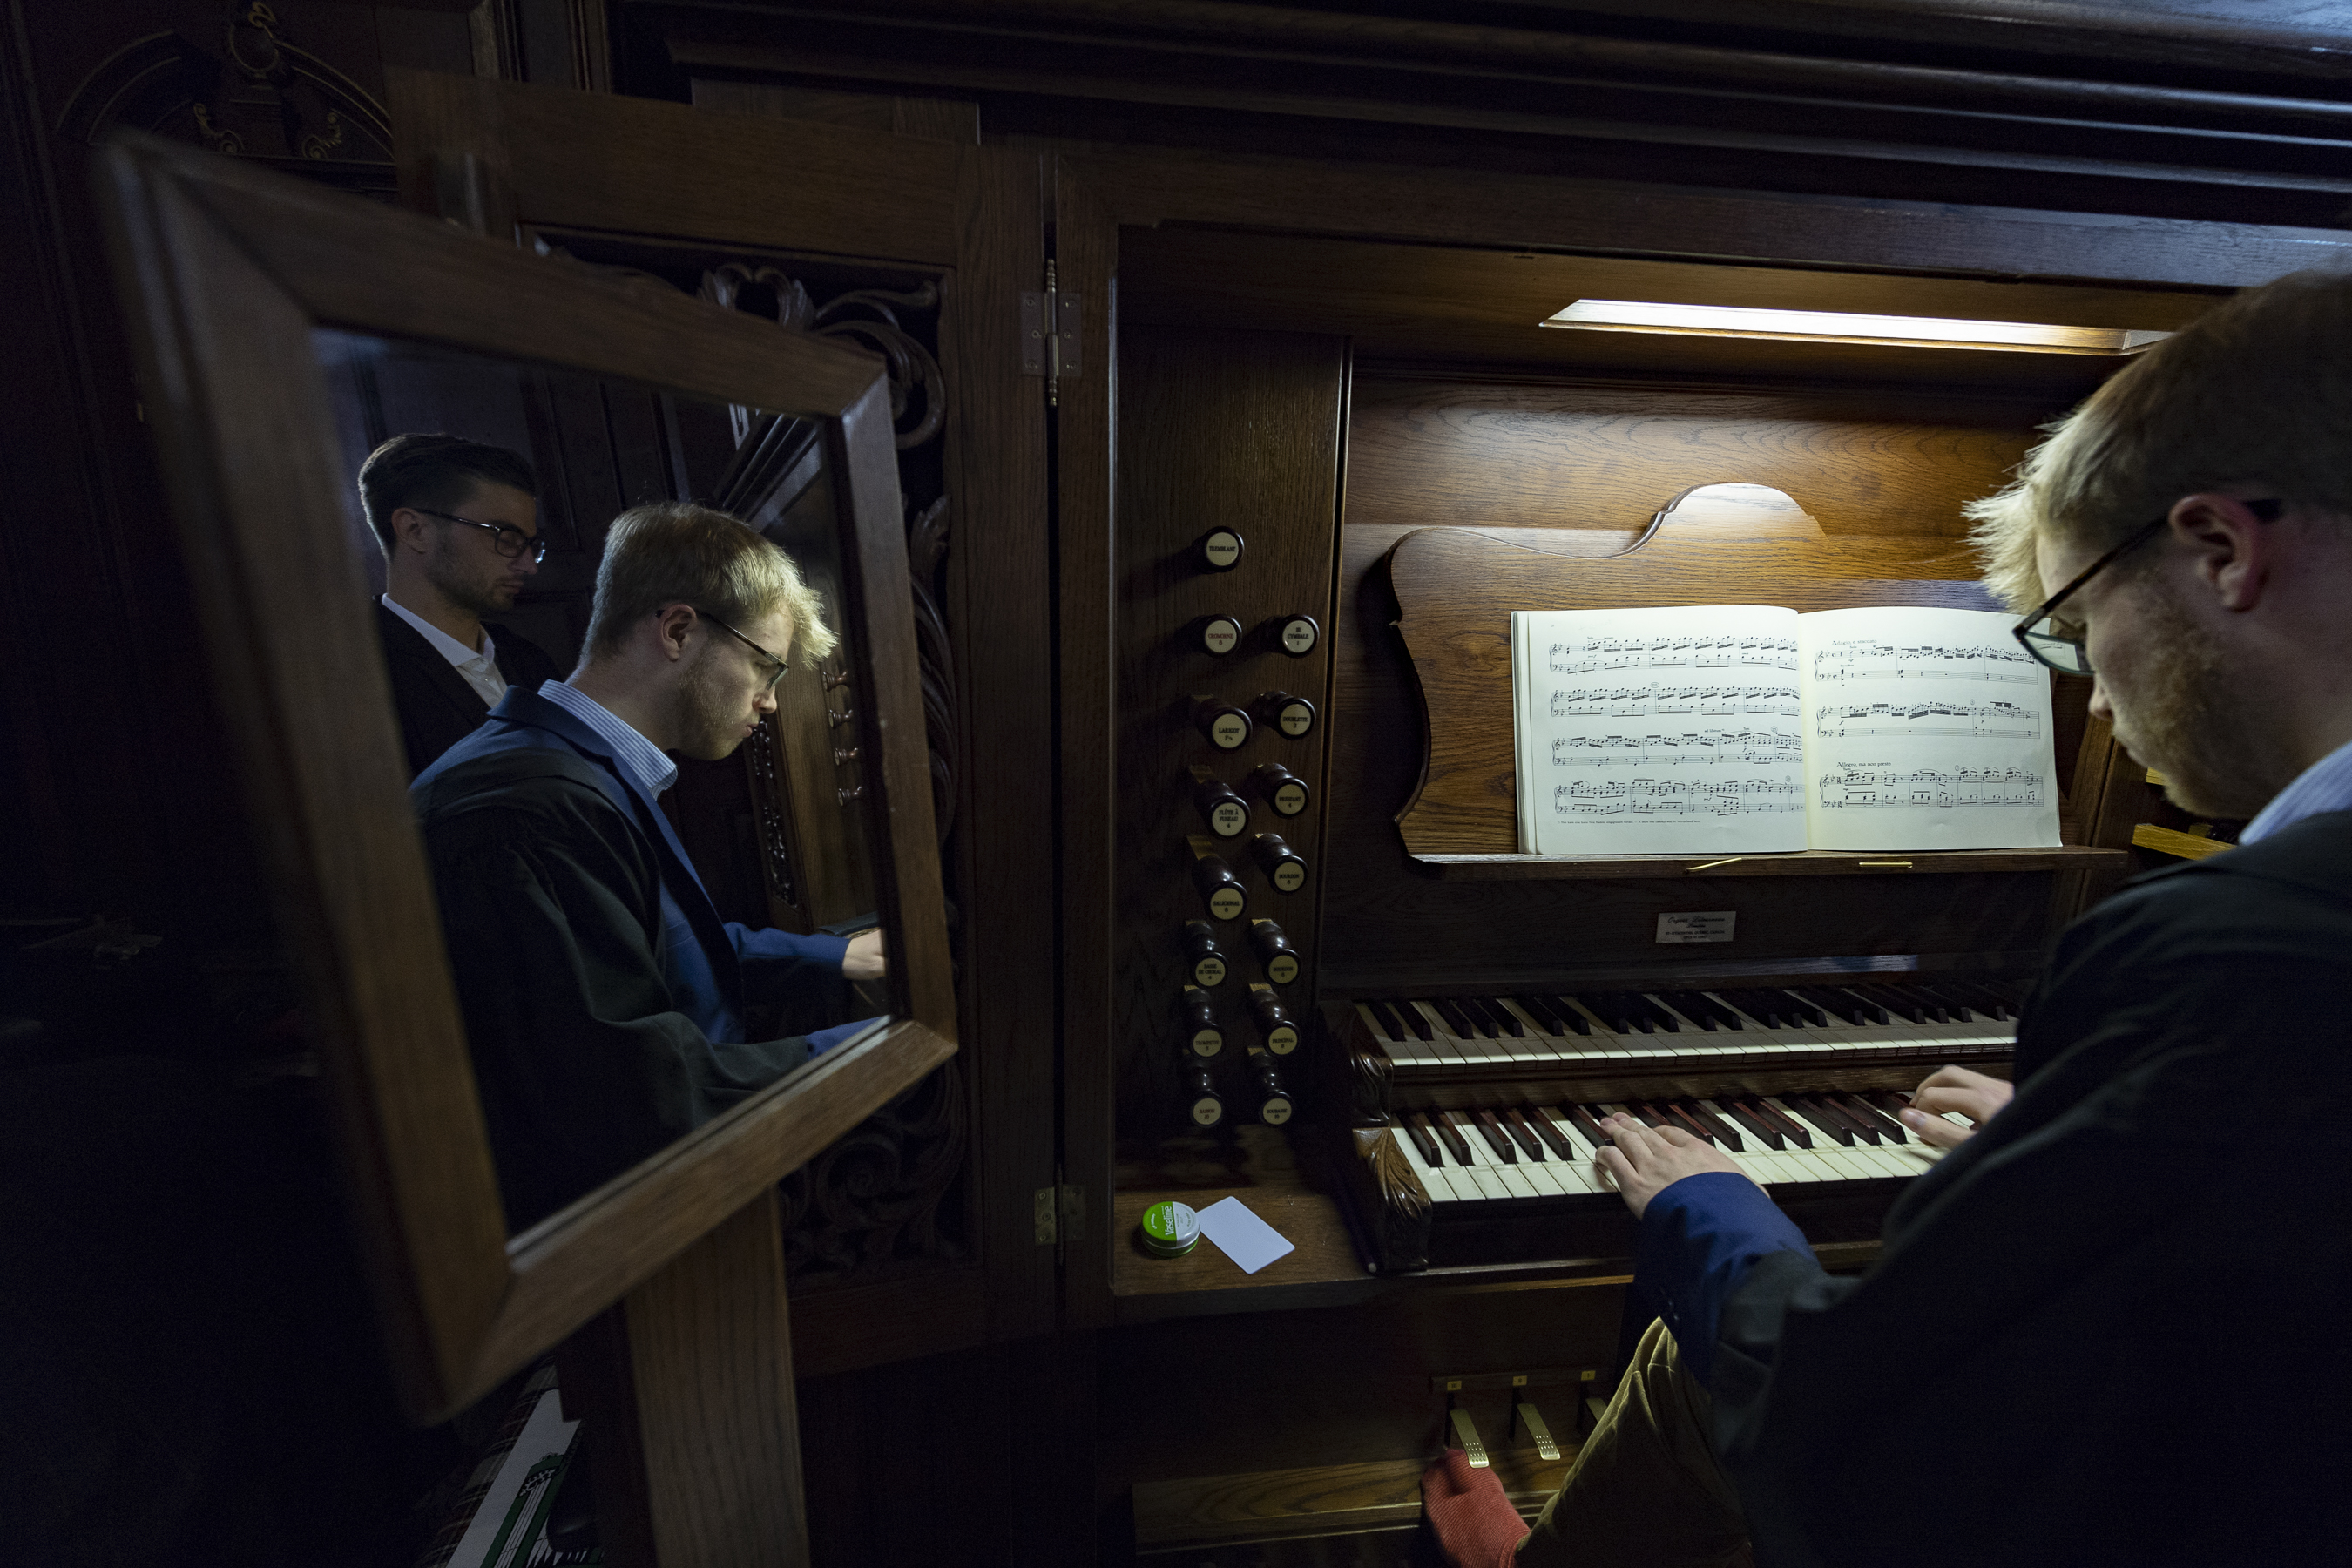 """An organist plays during the traditional Church of England """"Nine Lessons and Carols"""" service at the Pembroke College Chapel in Oxford, England, on Sunday, Nov. 25, 2018."""